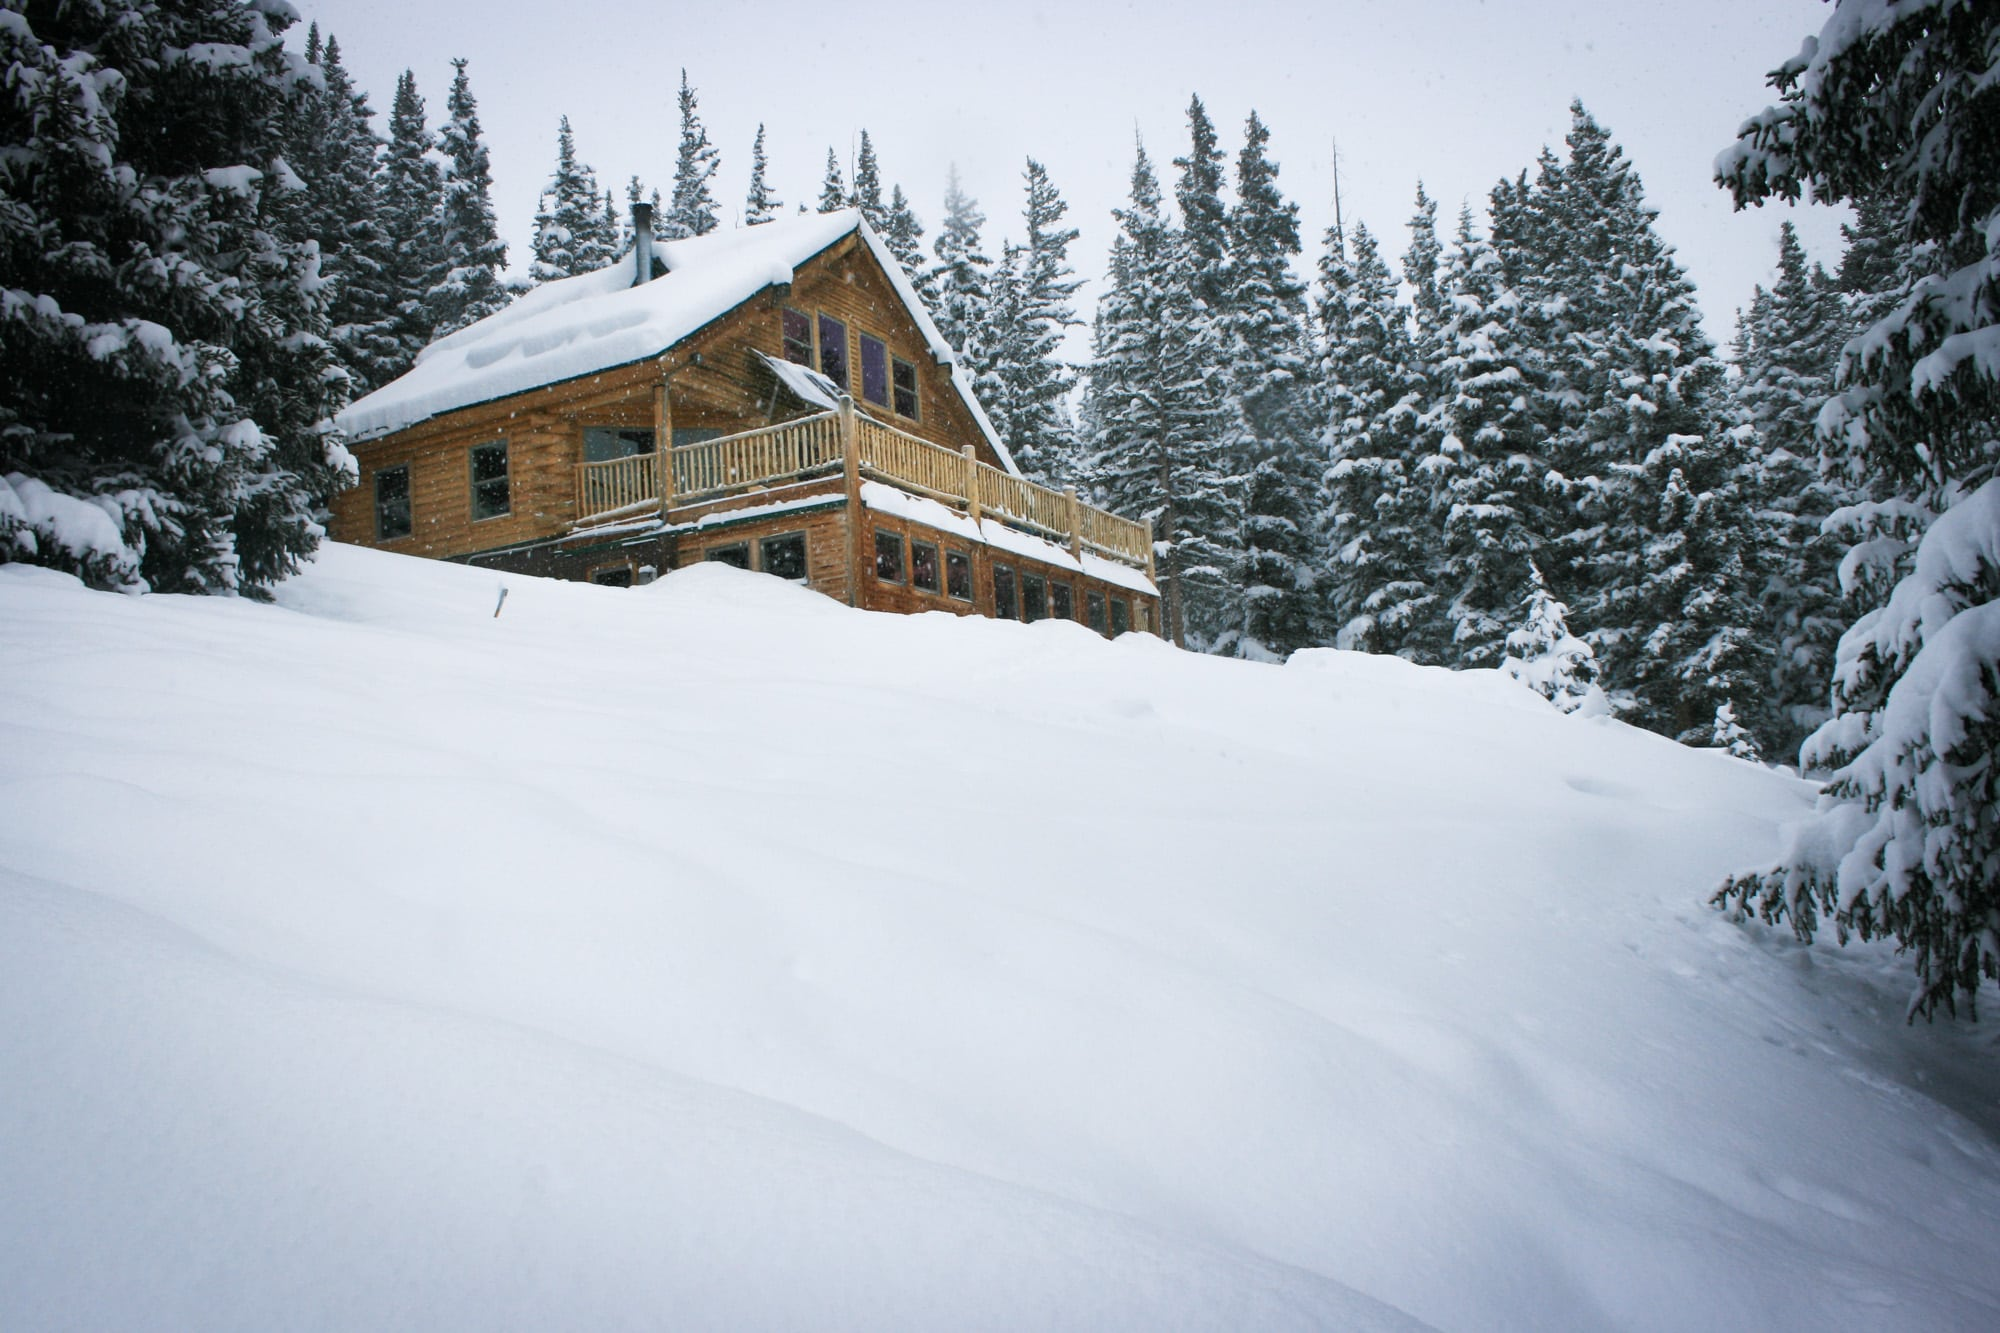 Reasons to take a backcountry hut trip - #10: Fresh powder out your doorstep